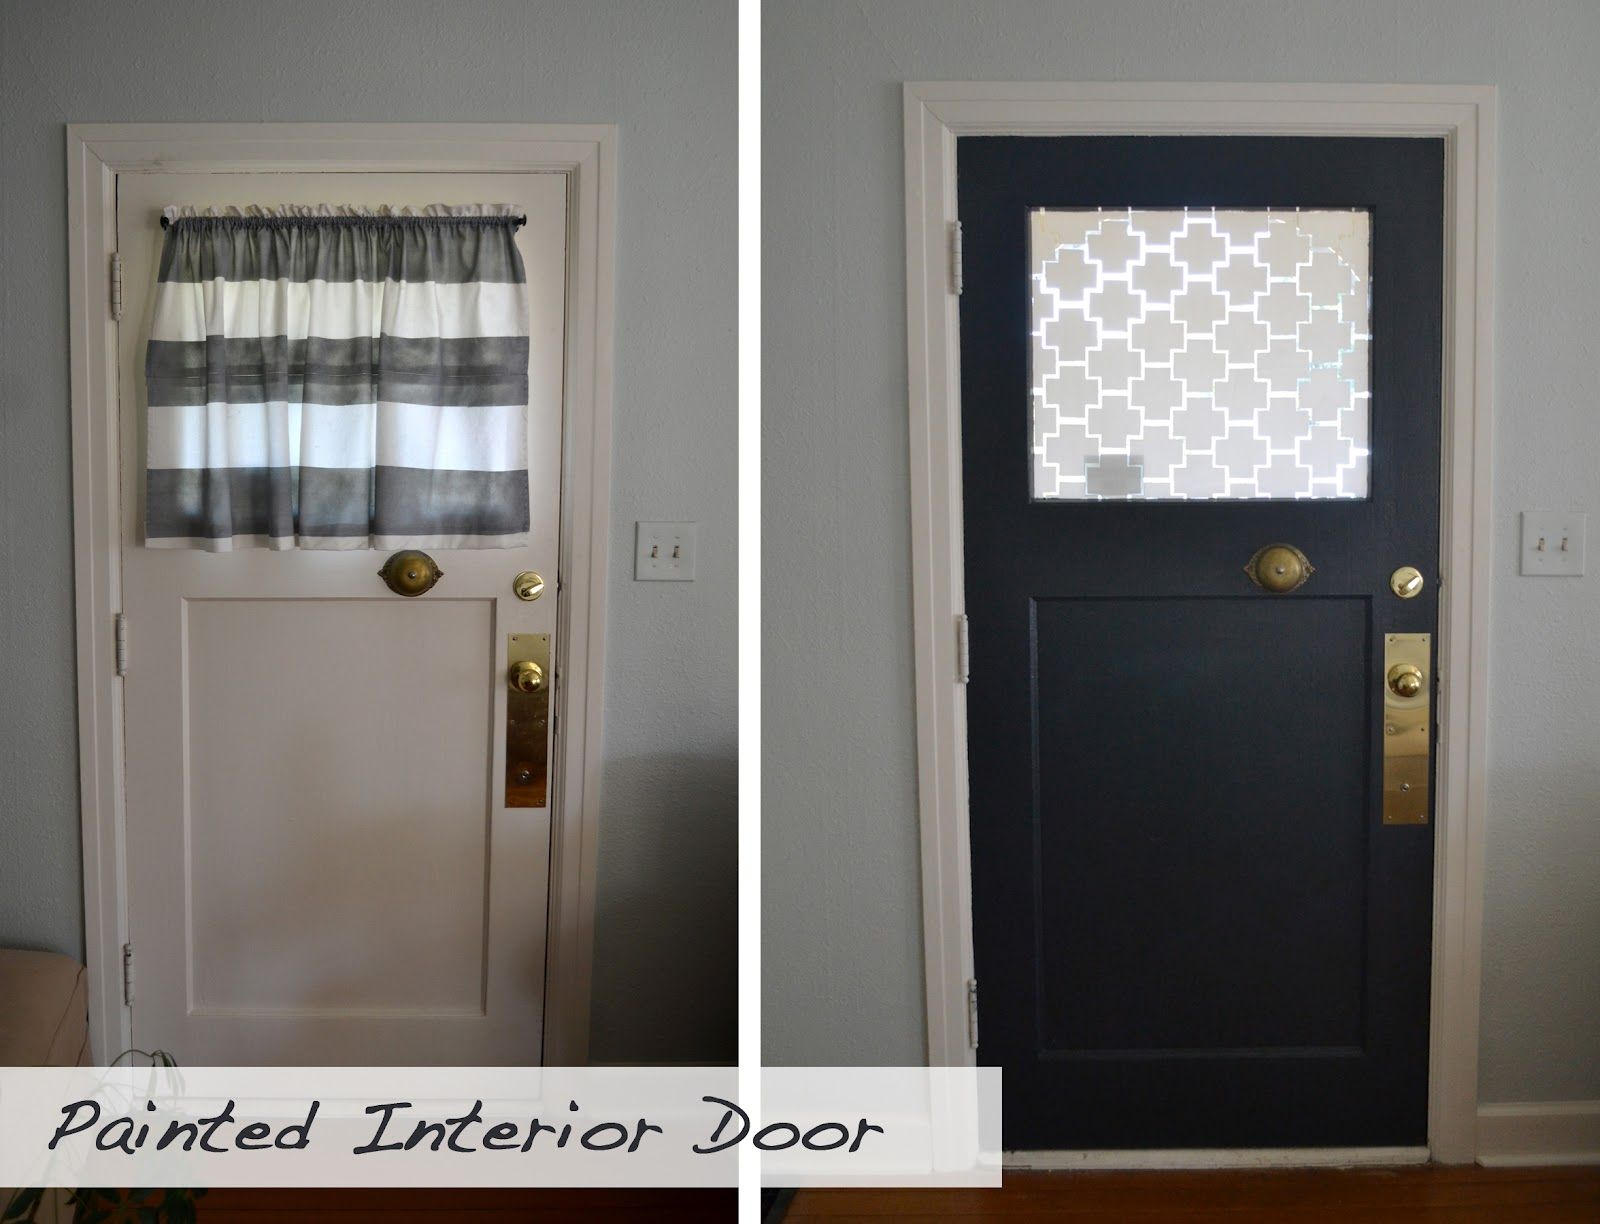 A Home In The Making: {renovate} Front Door Decorative Window Film